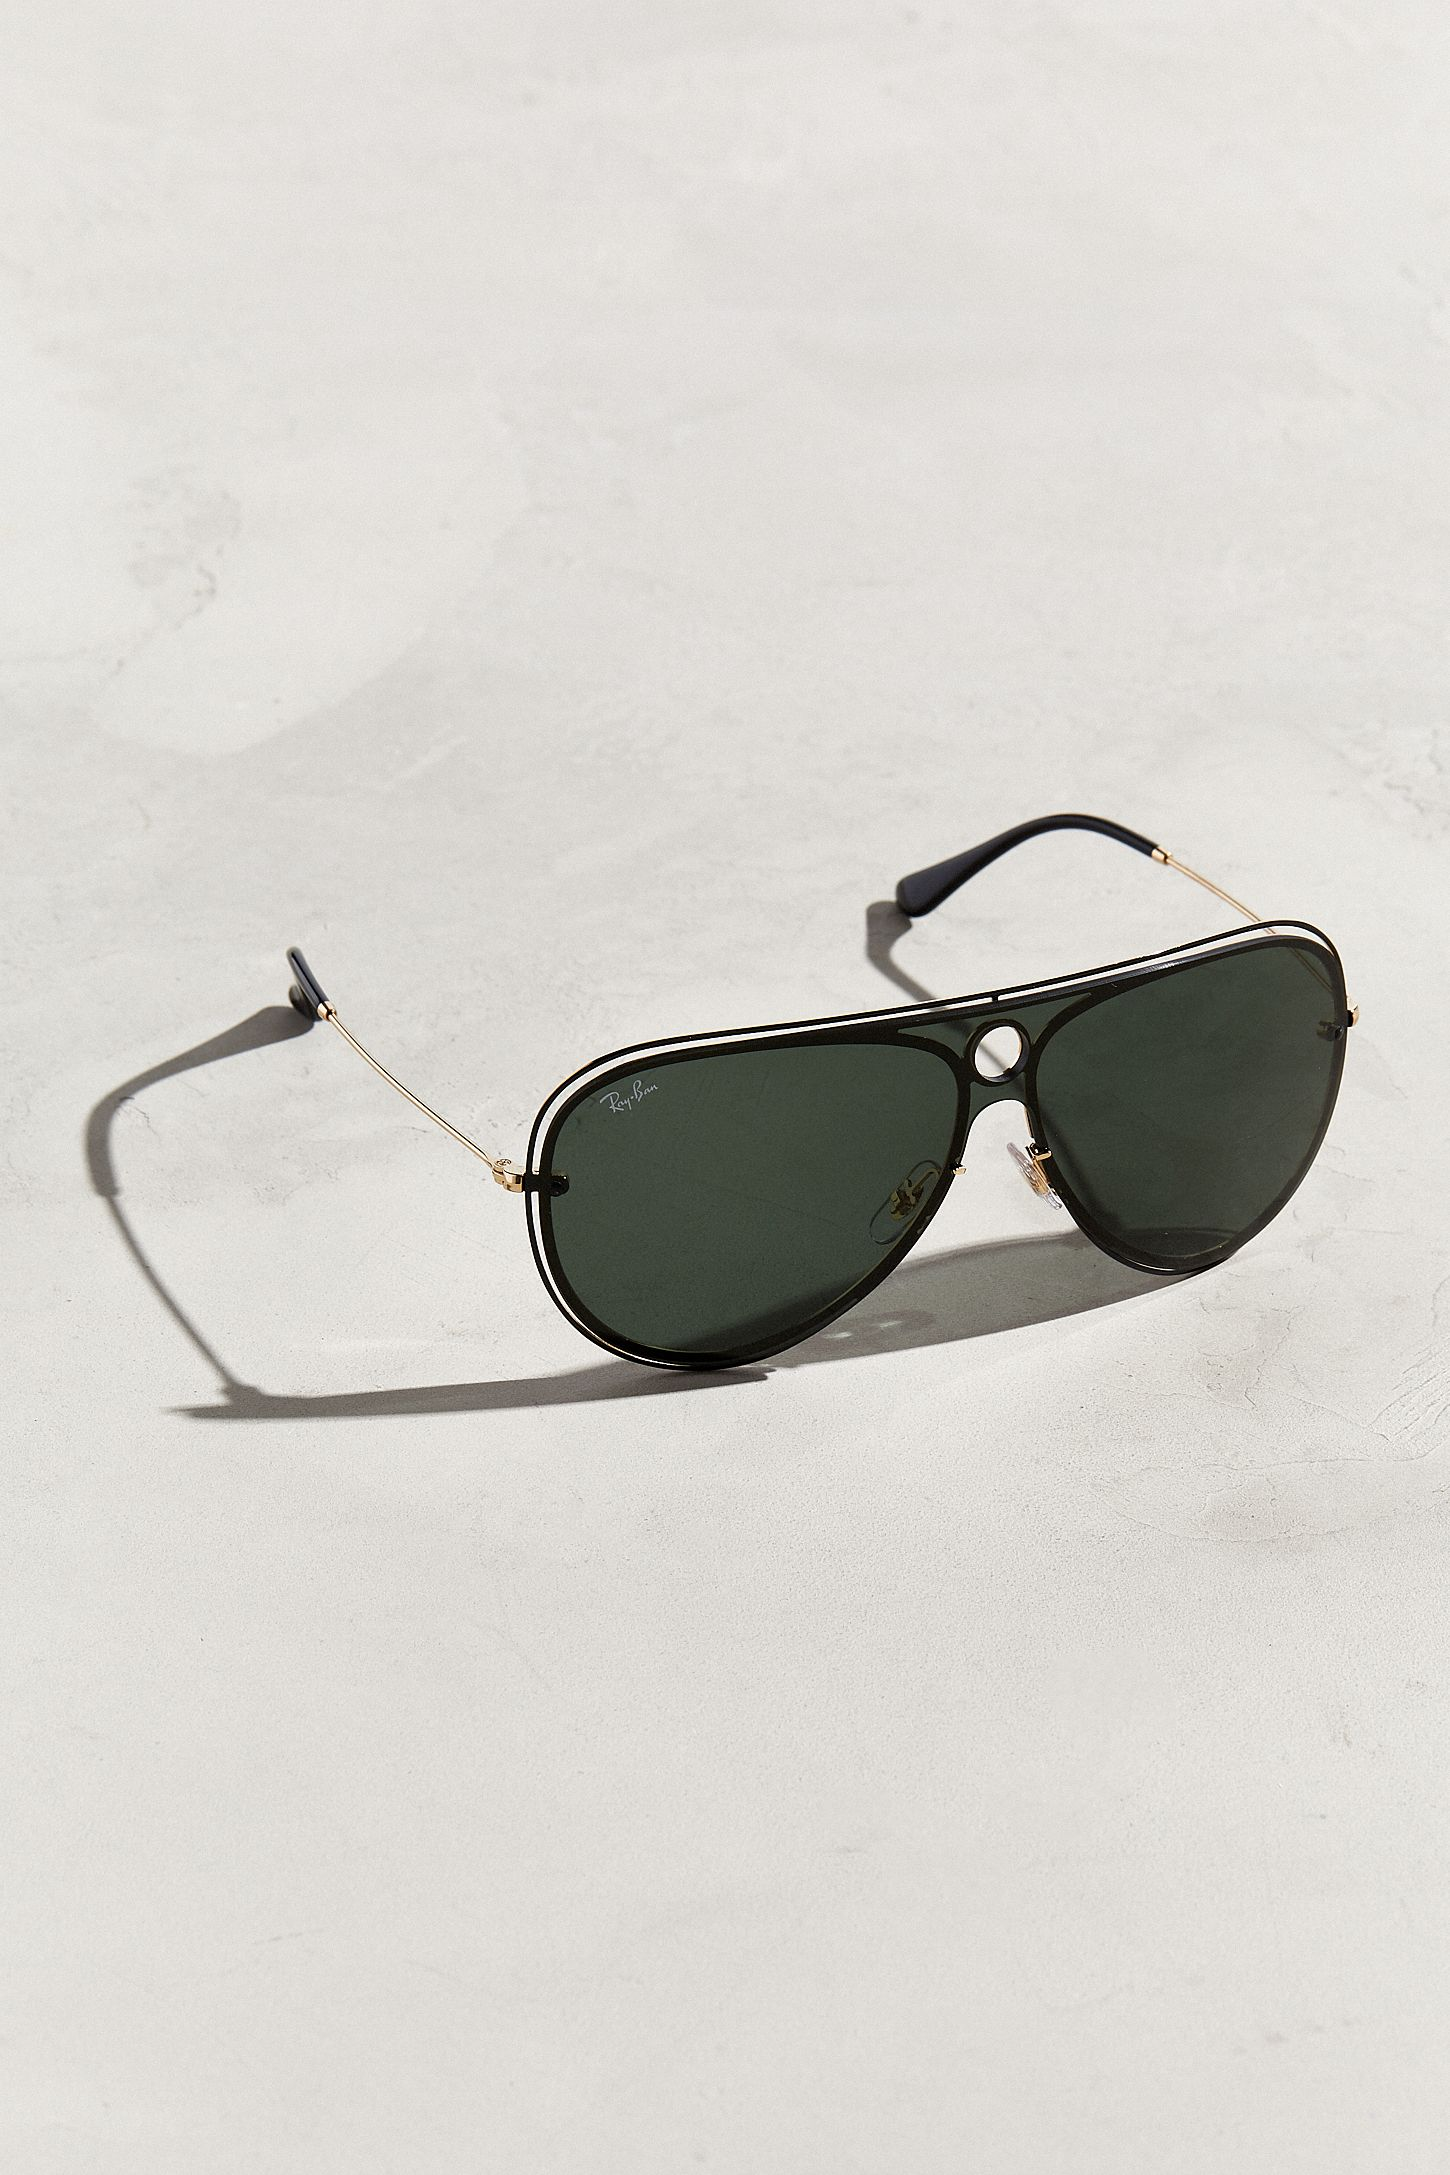 ray ban sunglasses buy online